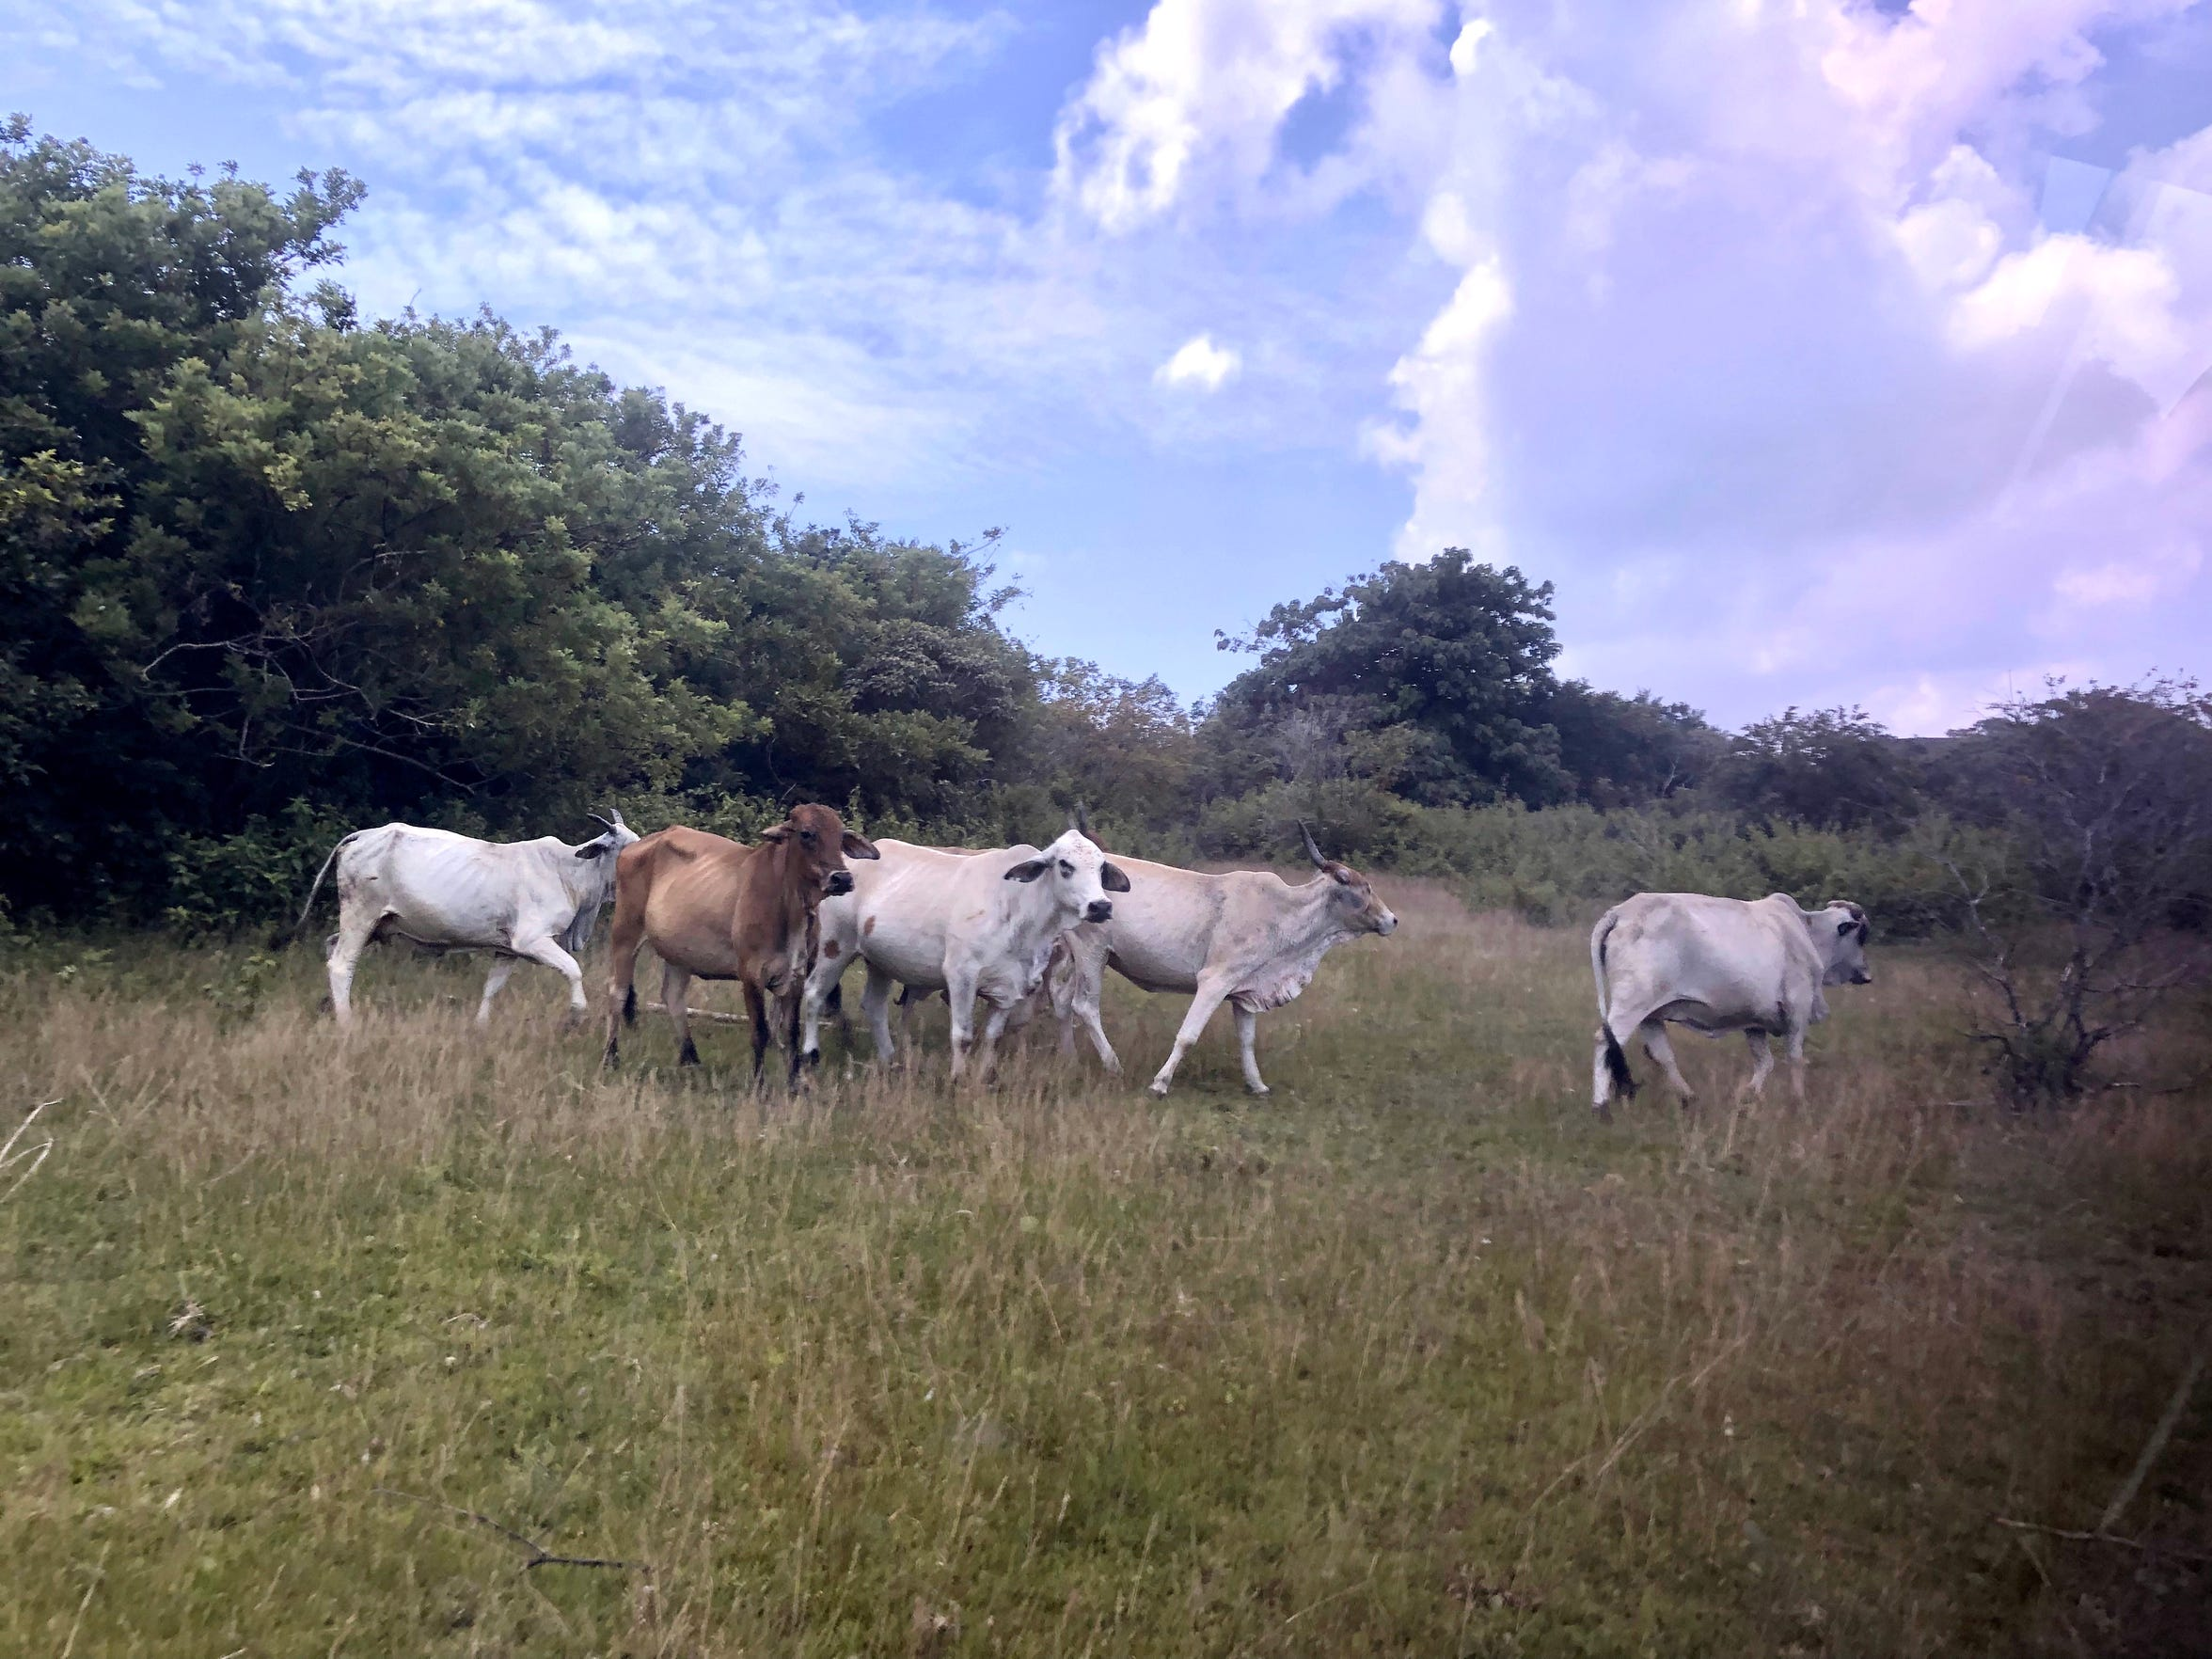 With their floppy ears and distinctive hump, Brahman cattle are well adapted to the Philippine heat.